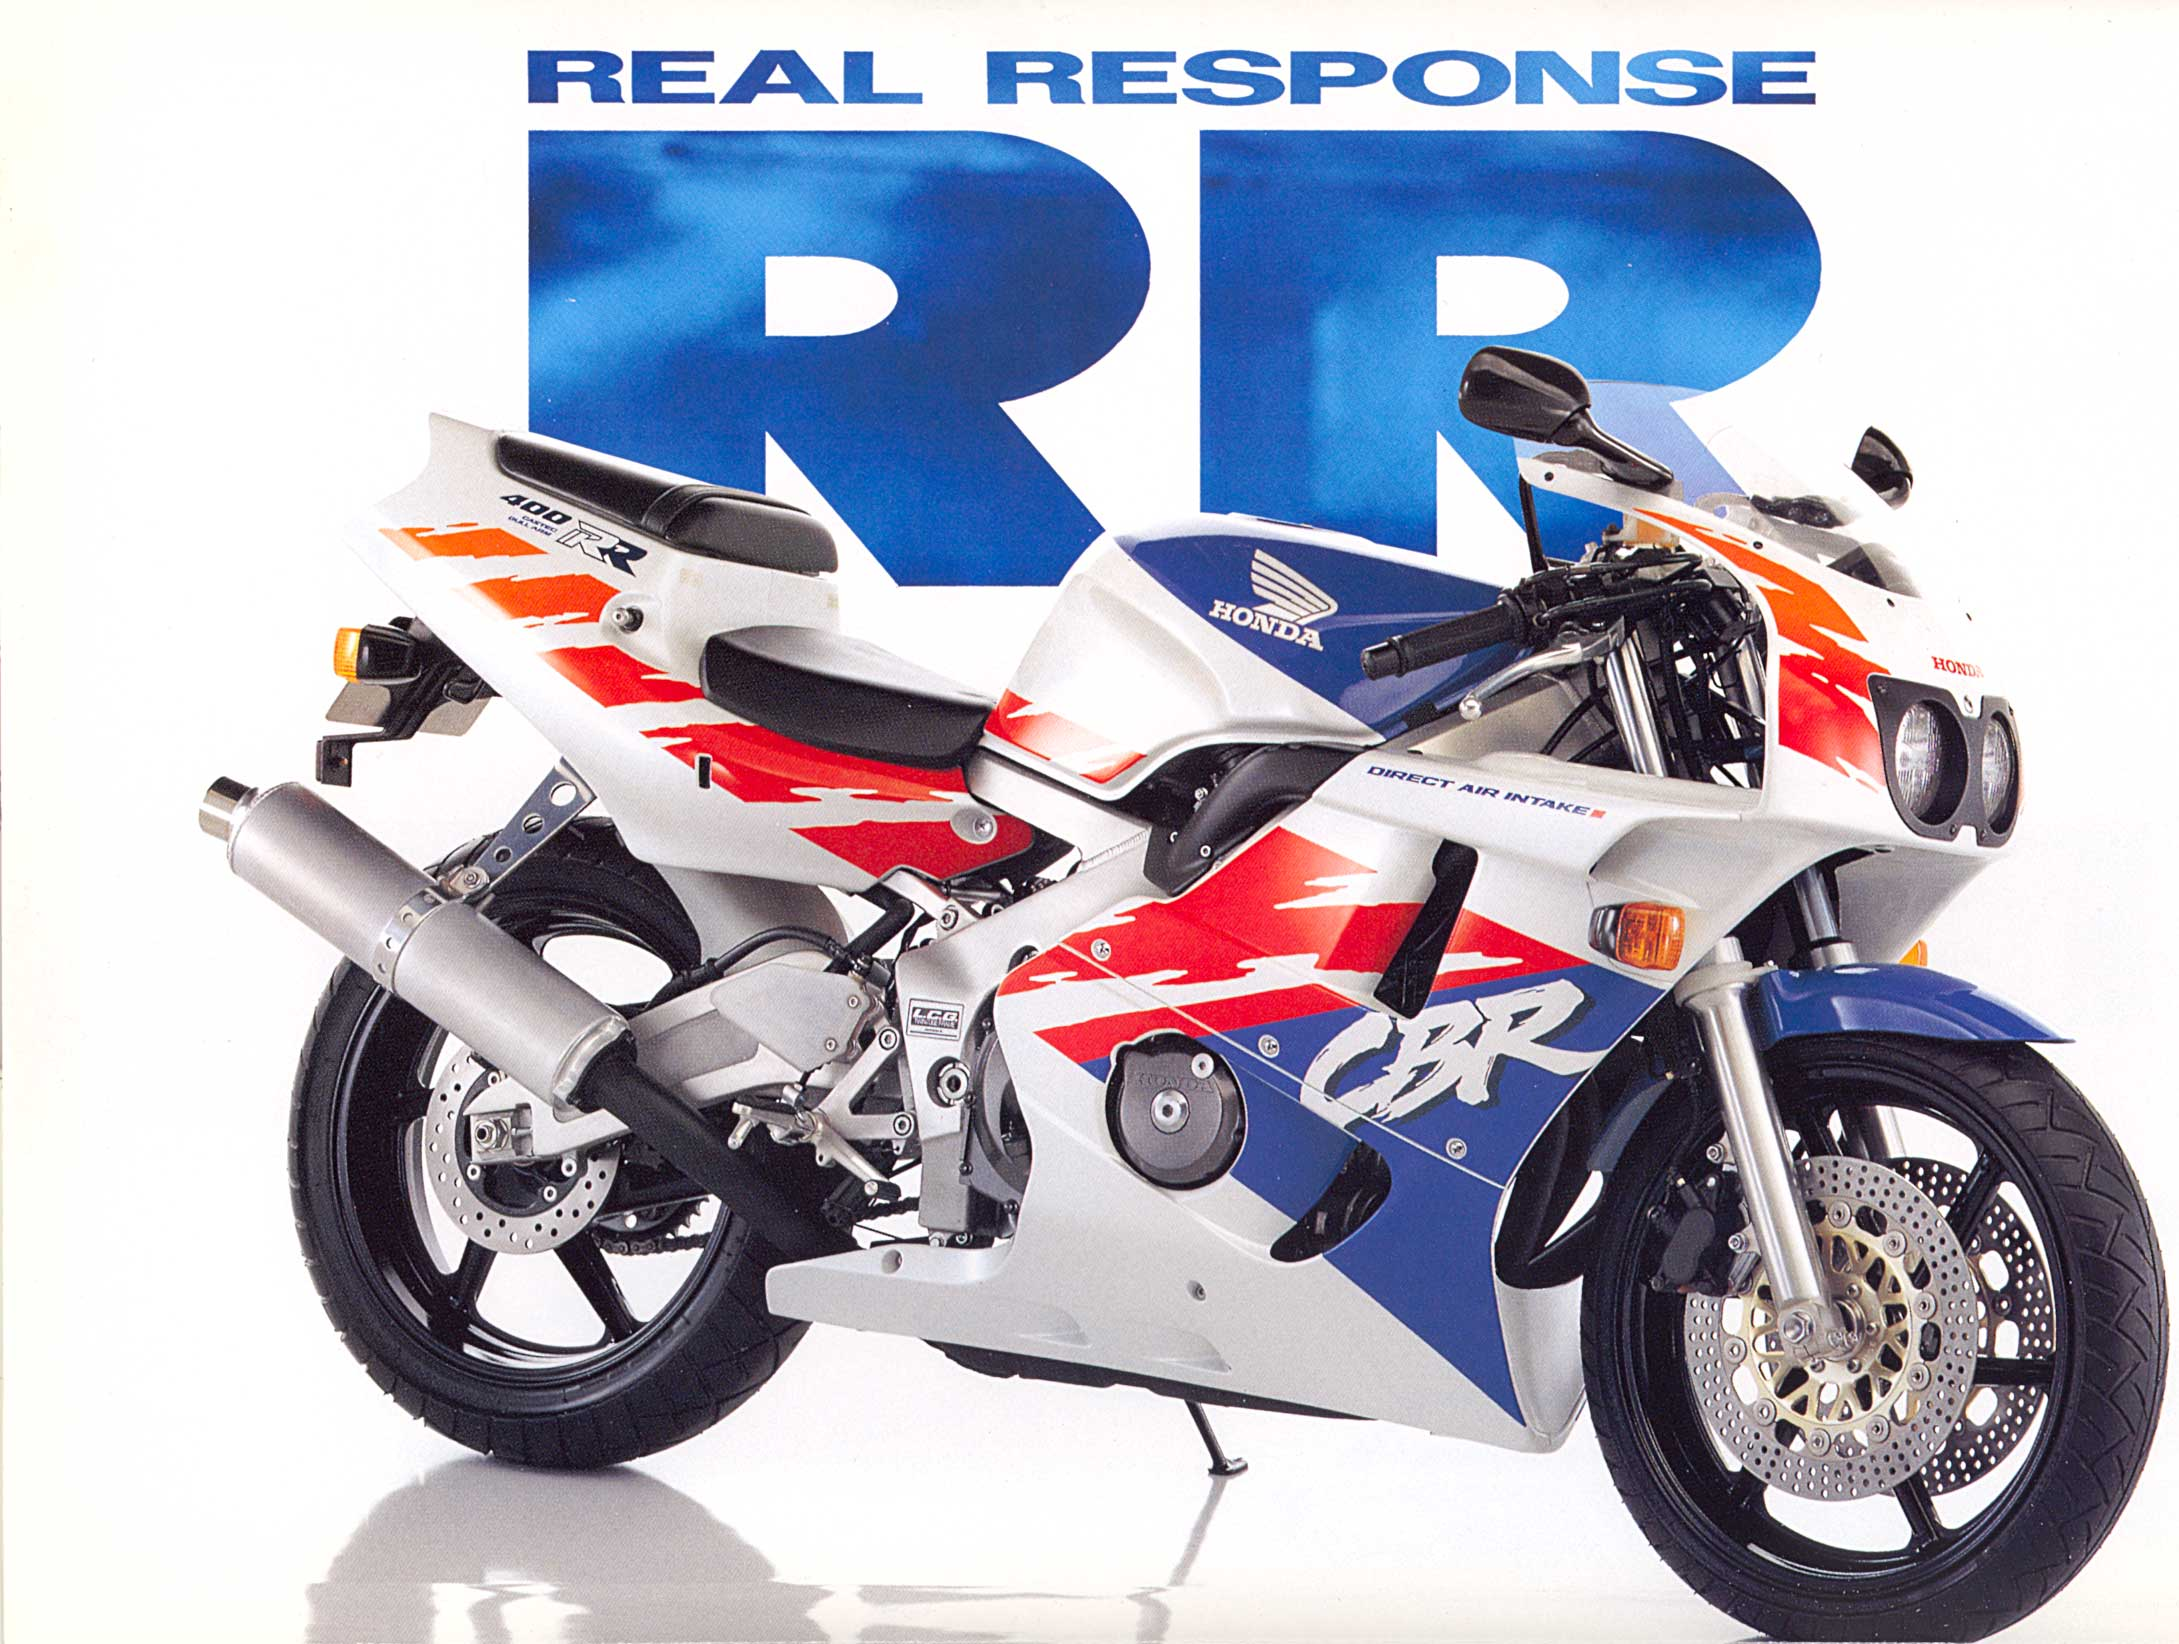 Cbr 900rr Wiring Diagram Library 900 1992 Honda Rr Pics Specs And Information Onlymotorbikes Com Crf250x 92